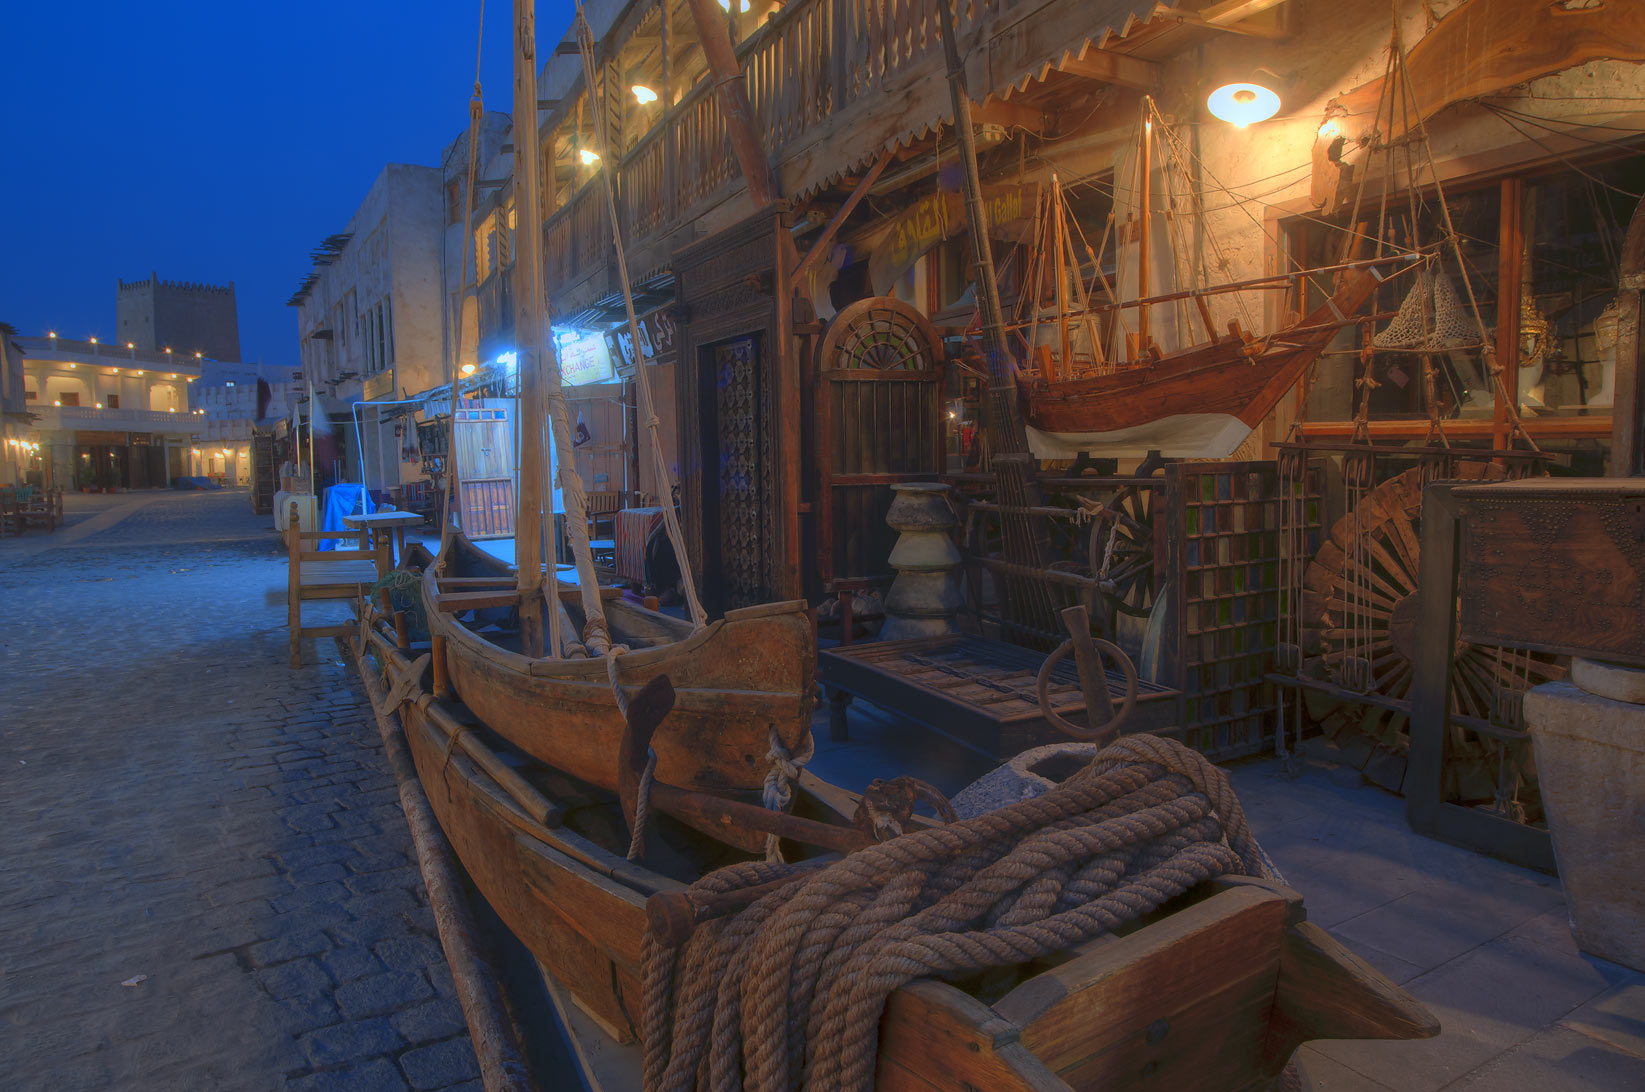 Antique shops in Souq Waqif (Old Market) at morning. Doha, Qatar